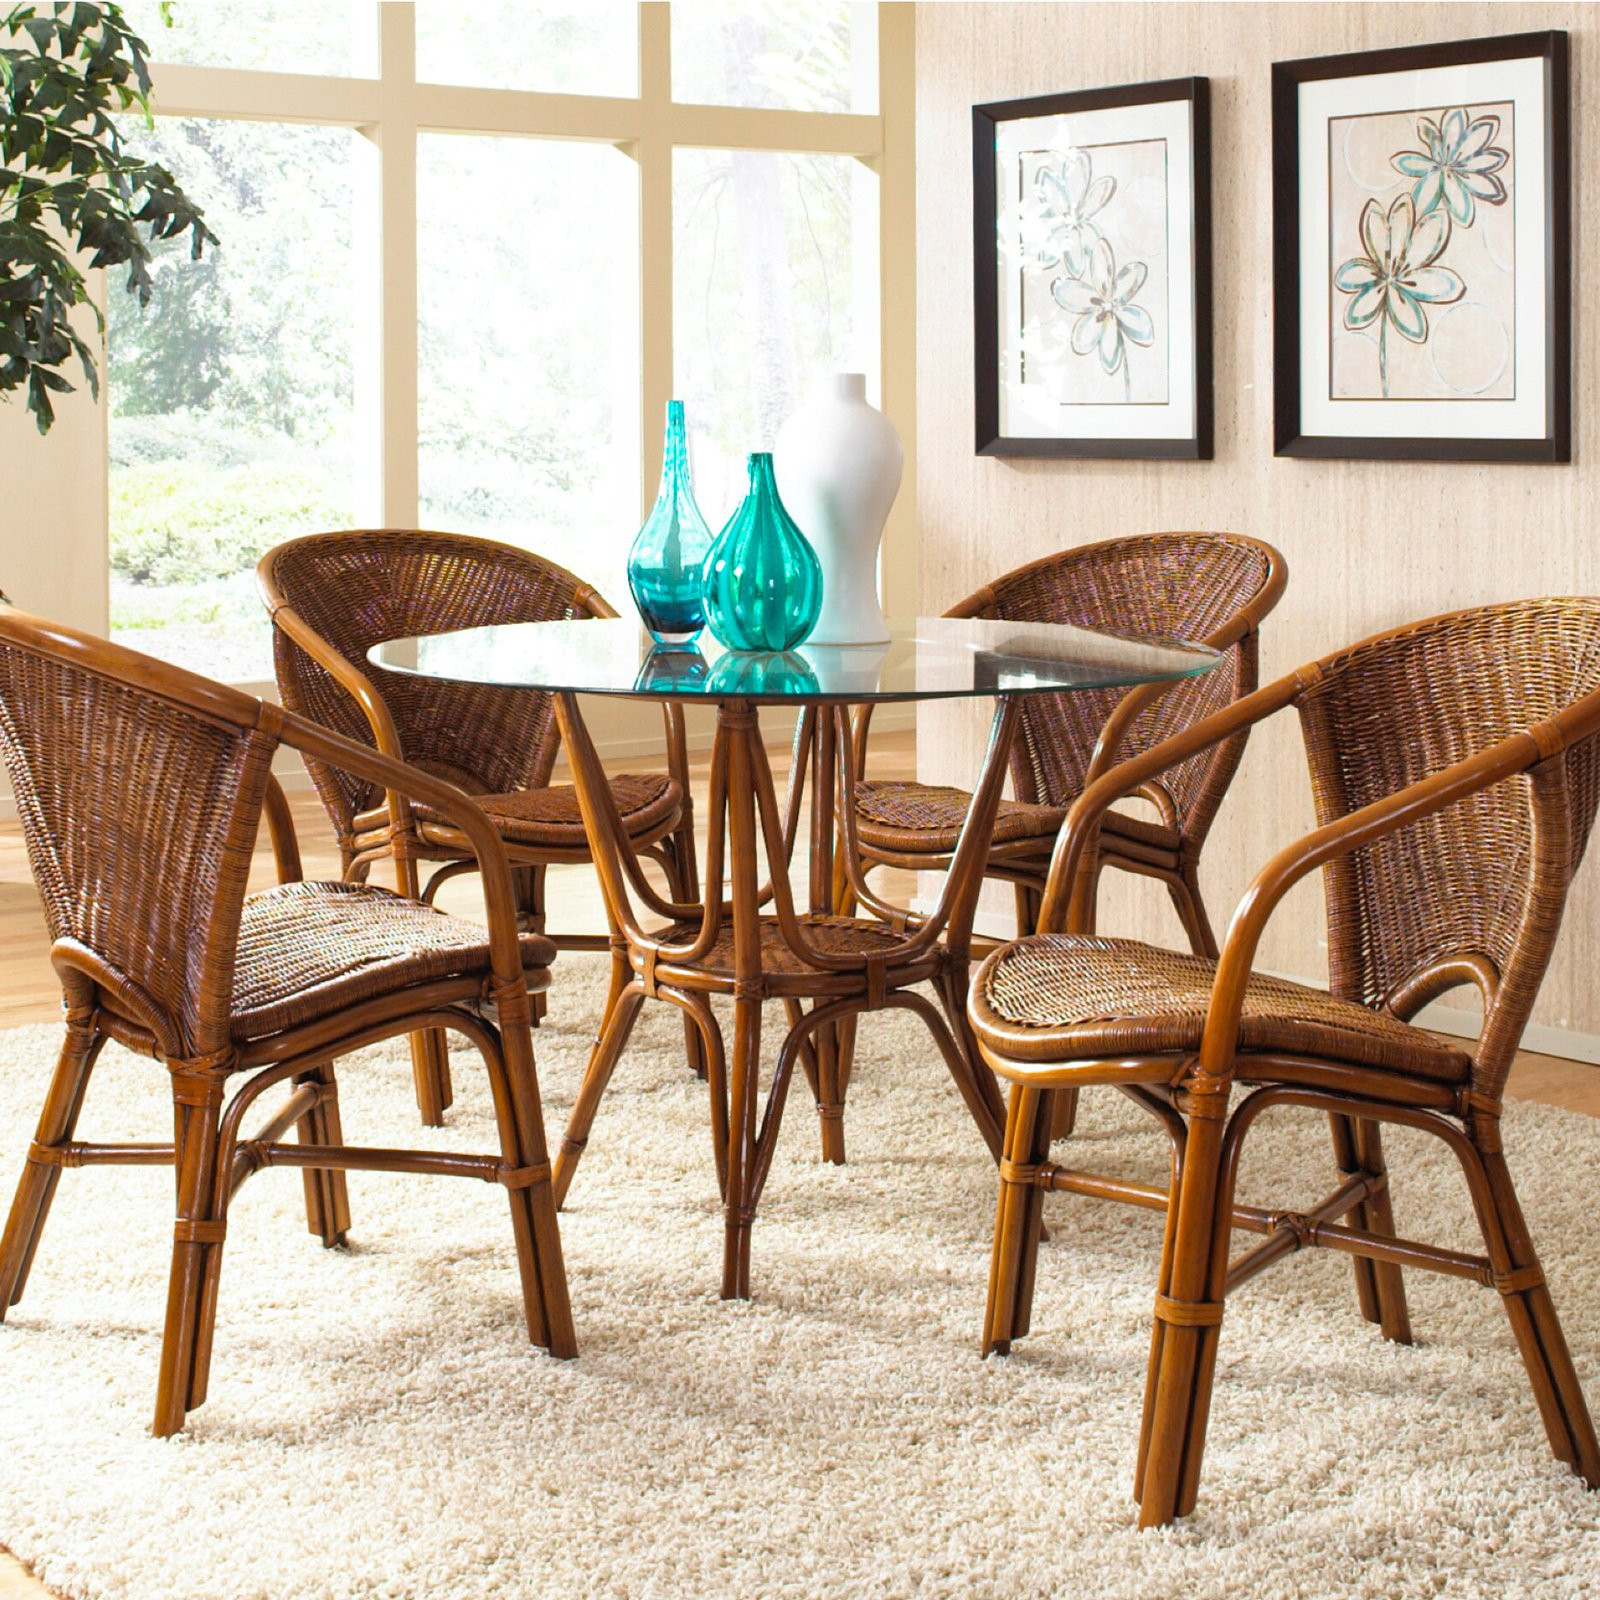 Best ideas about Rattan Dining Set . Save or Pin Hospitality Rattan Greece Indoor 5 Piece Rattan & Wicker Now.